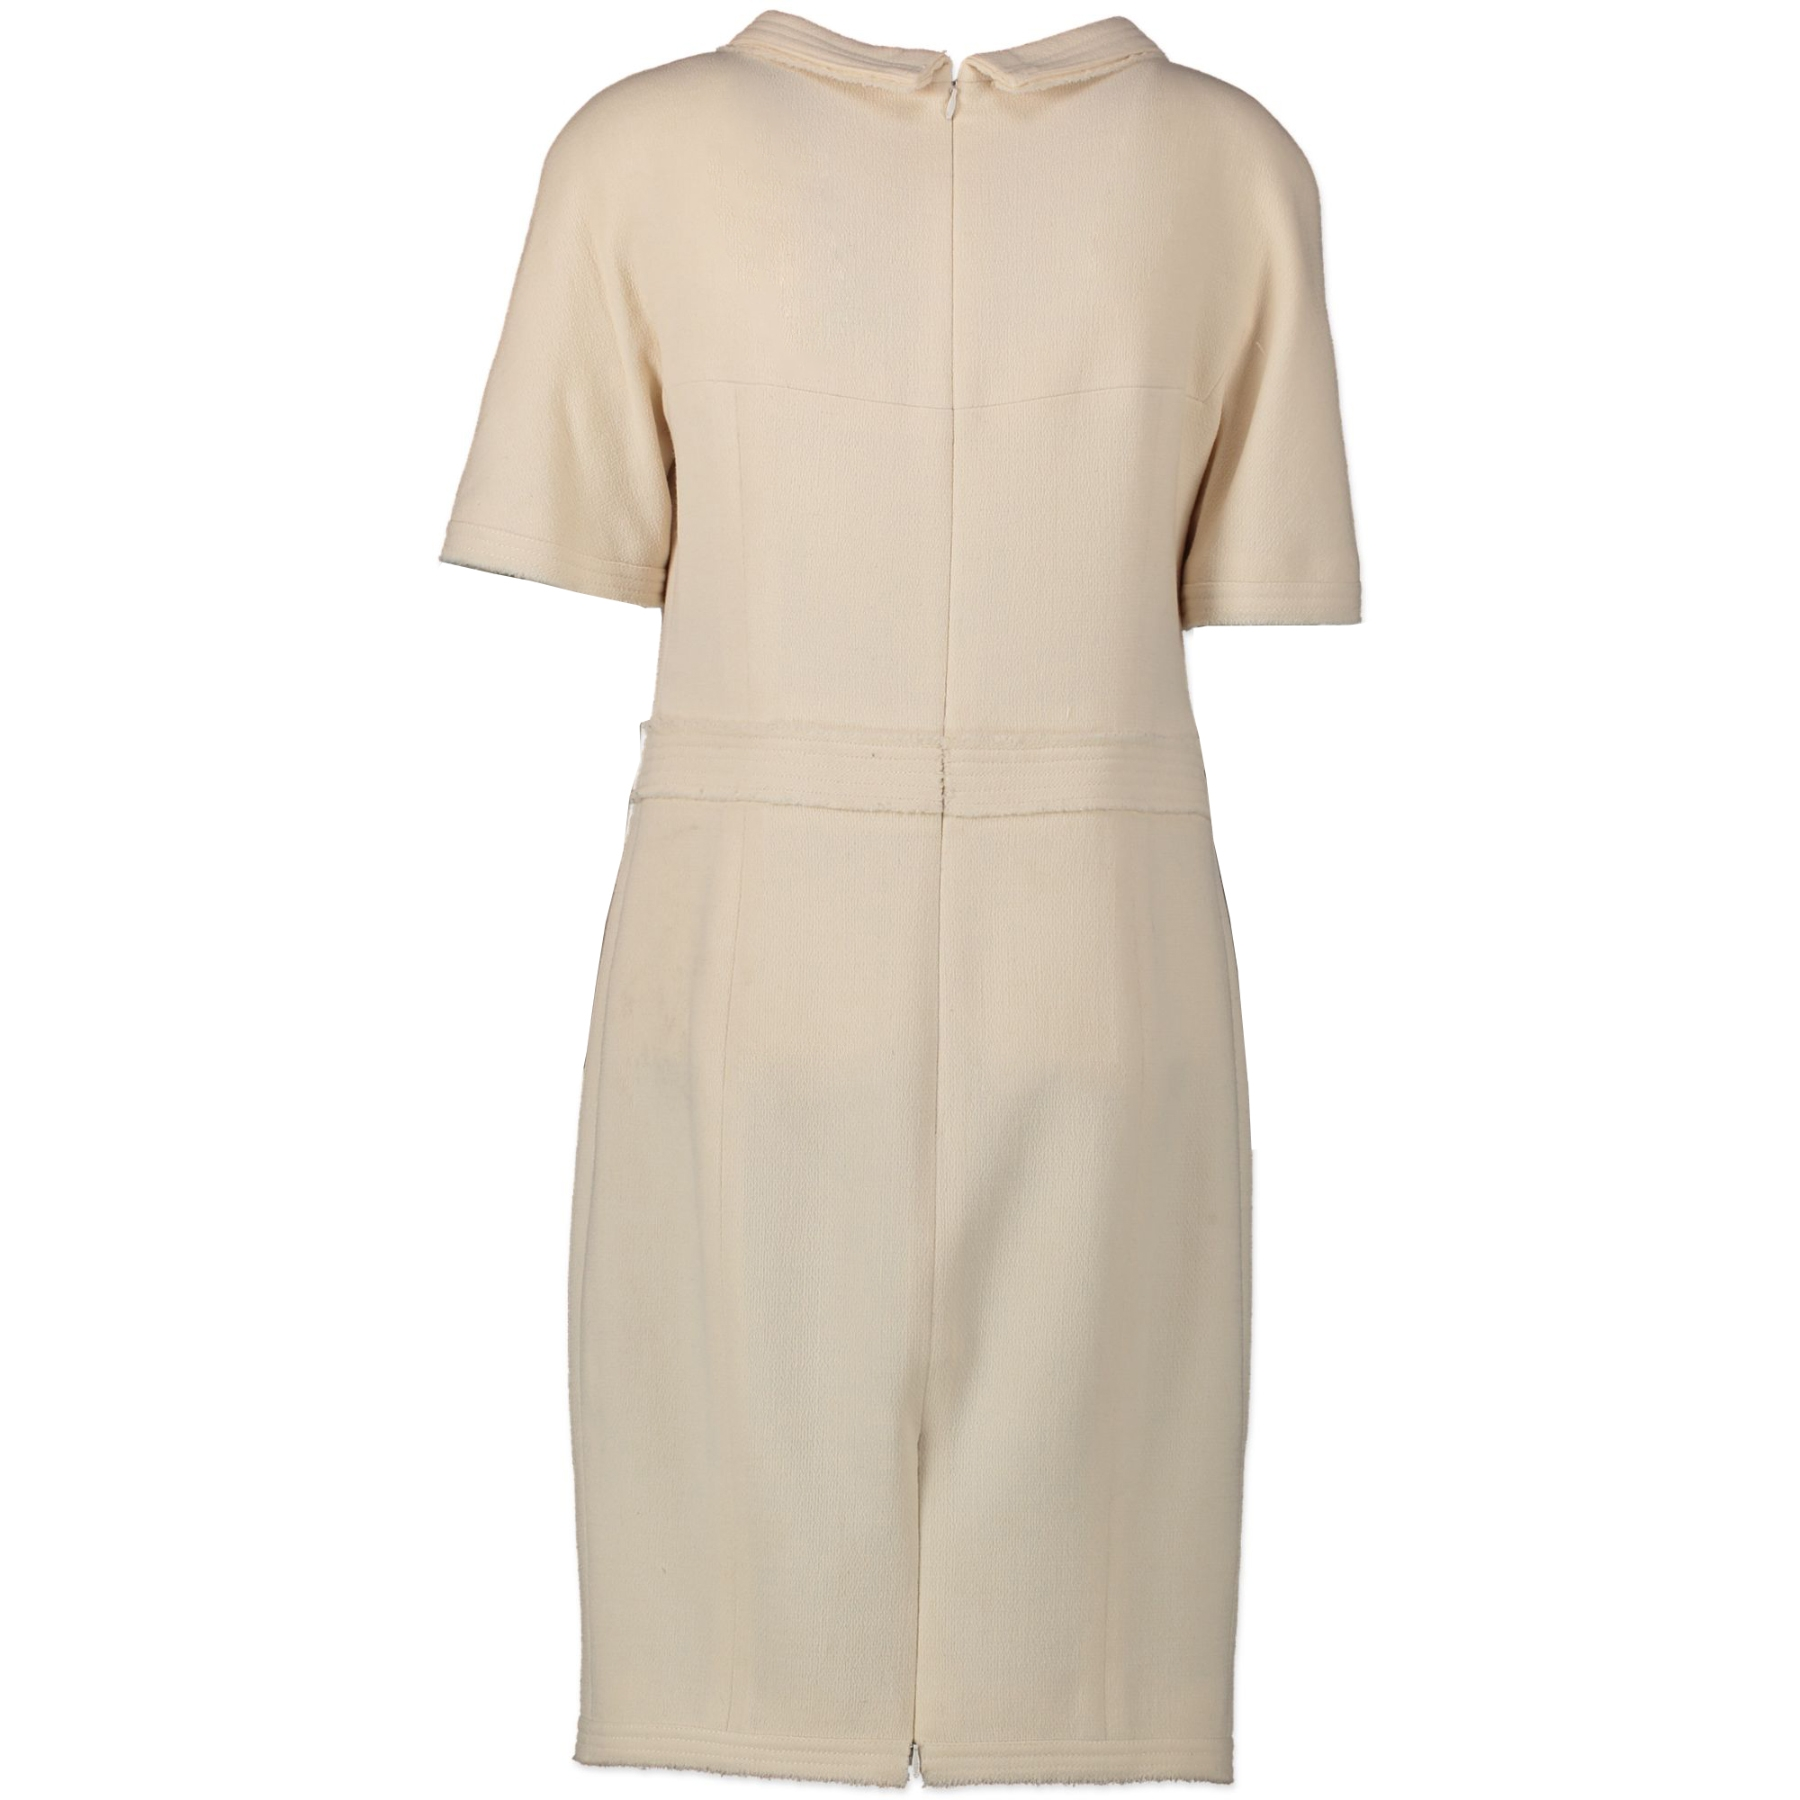 Authentic secondhand Chanel Cream Dress - Size 40 designer clothing accessories bags fashion luxury vintage webshop safe secure online shopping